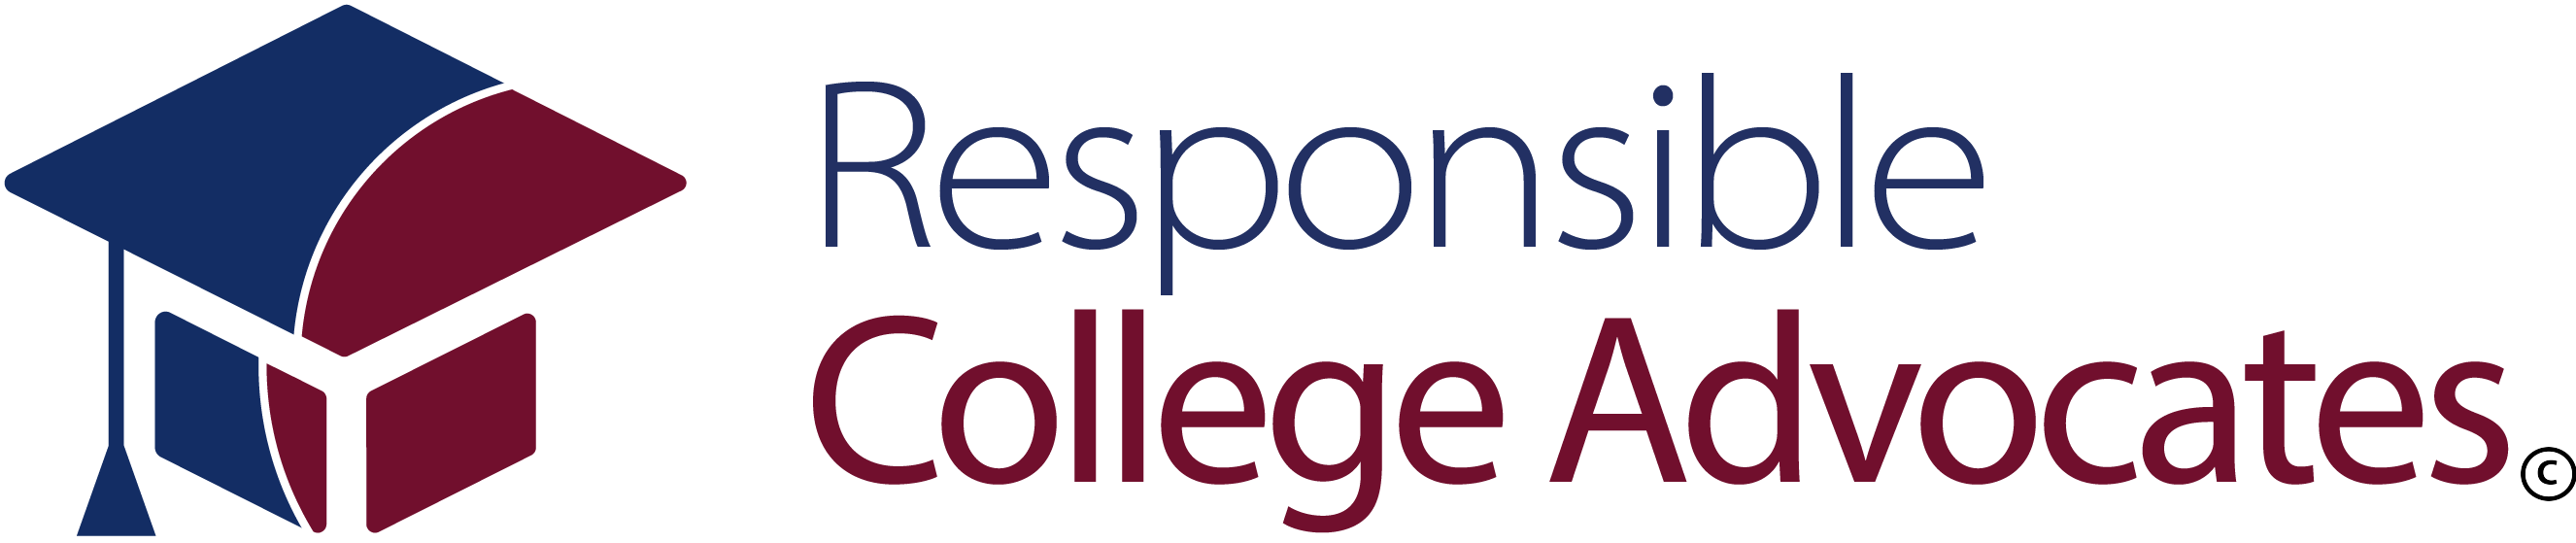 Responsible College Advocates